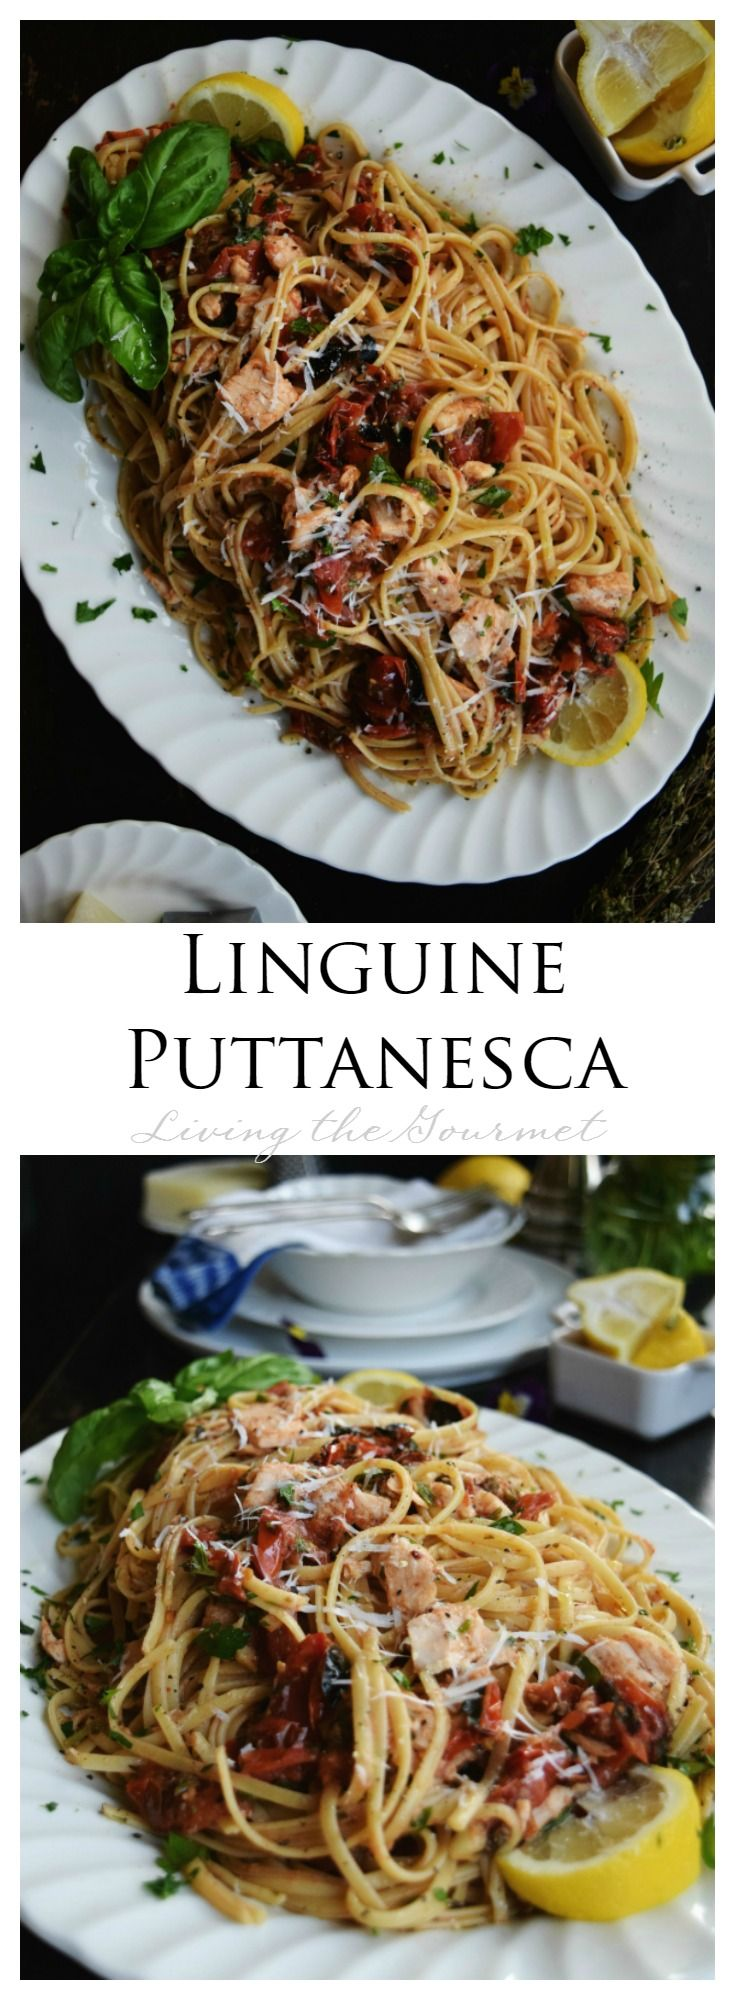 Living the Gourmet: Linguine Puttanesca is a simple and delicious twist with #WildSelections Tuna! #EarthDay #Ad @WildSelections